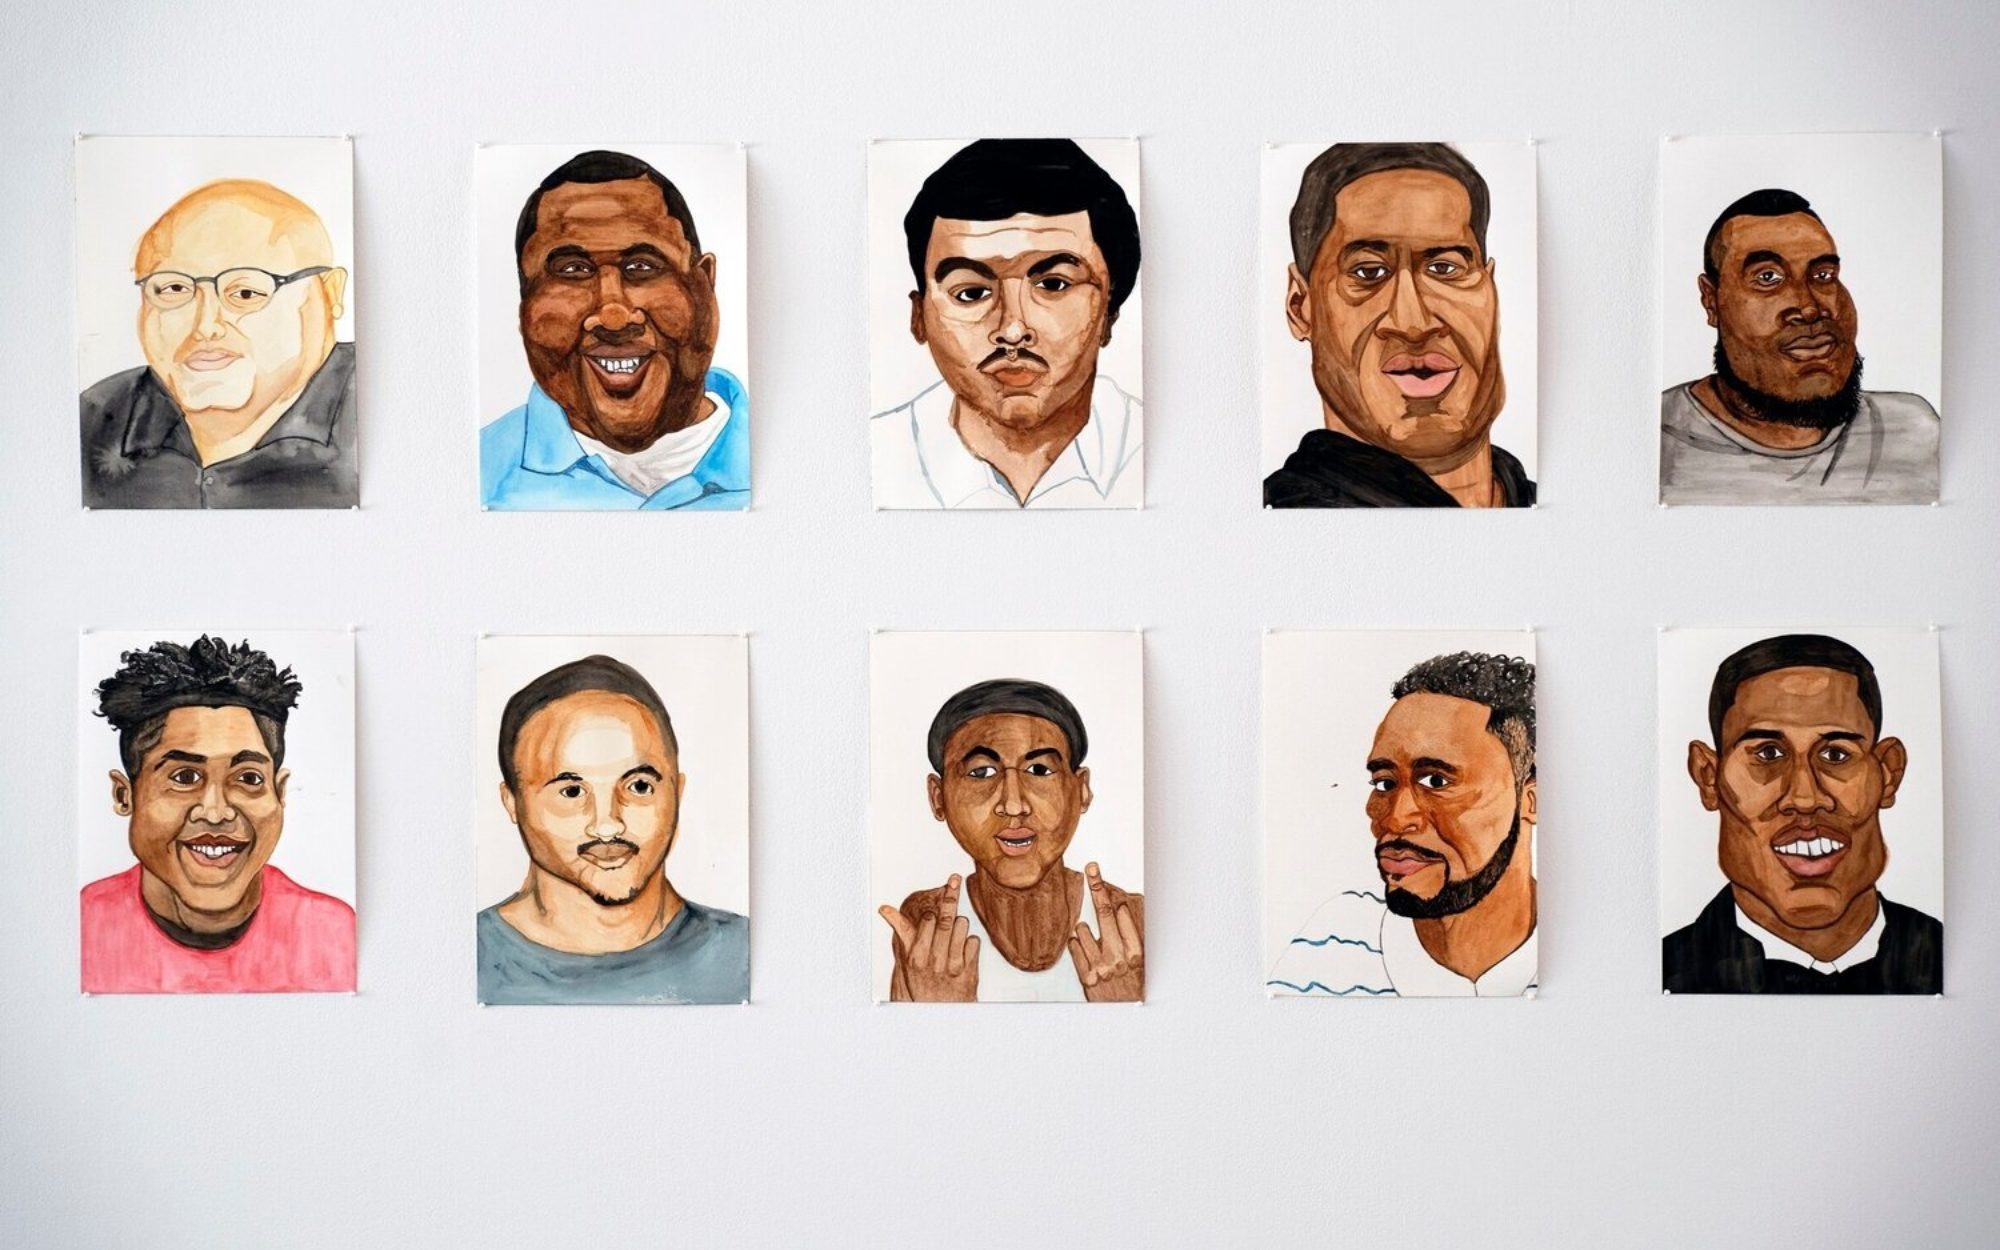 Detail of watercolor portraits against white wall